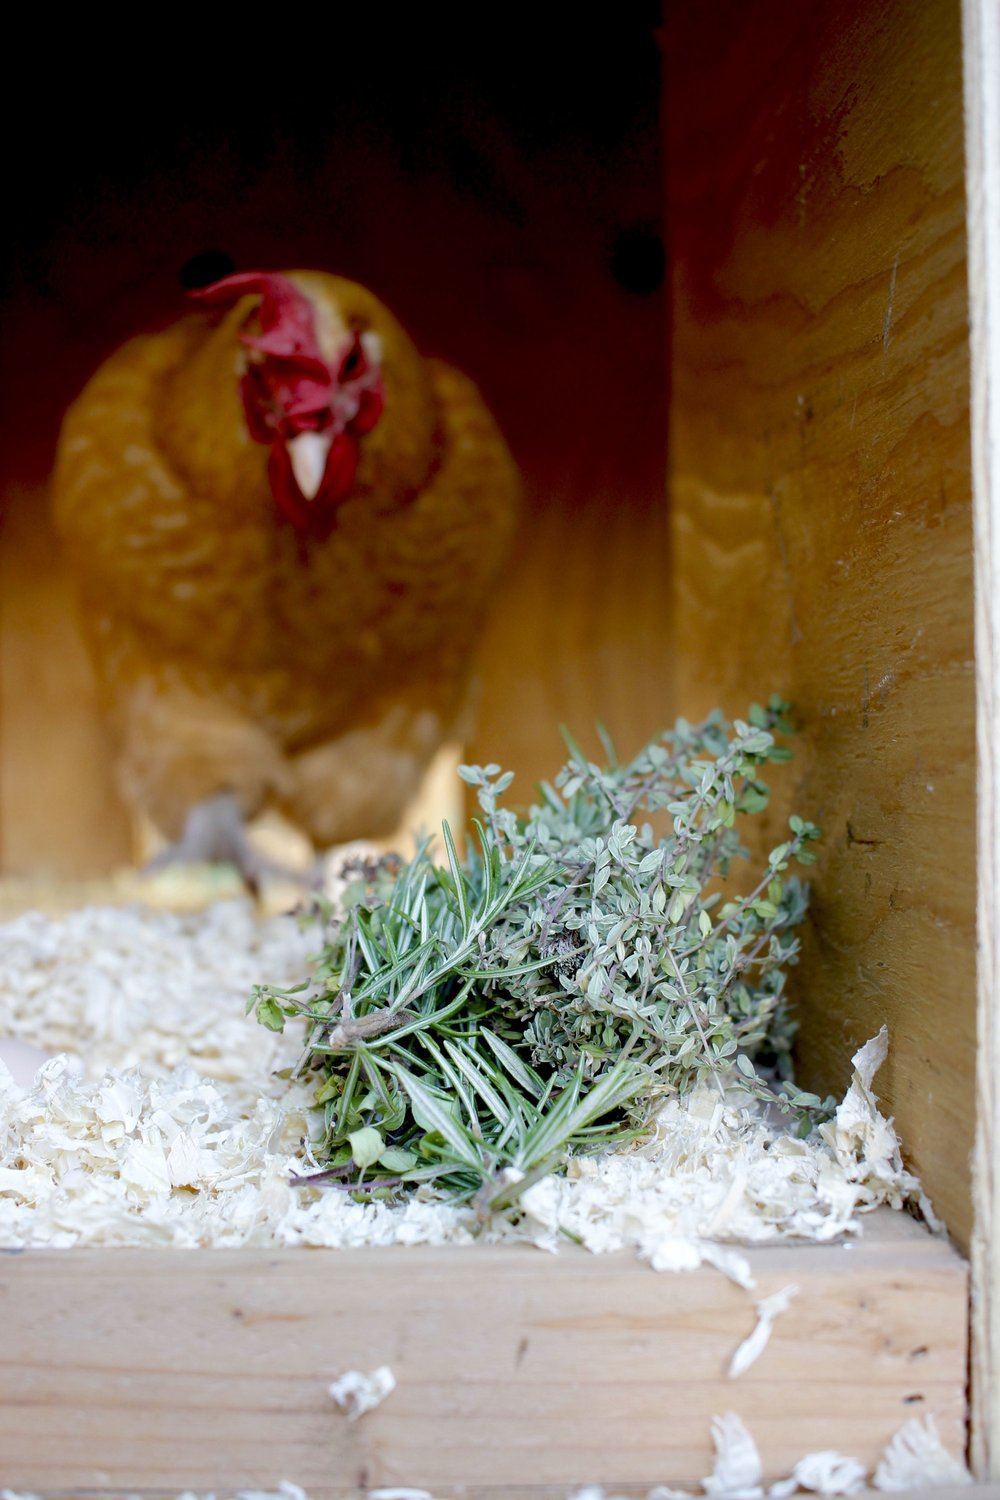 Kitty Wells the Buff Orpington gets curious about the nesting box herbs